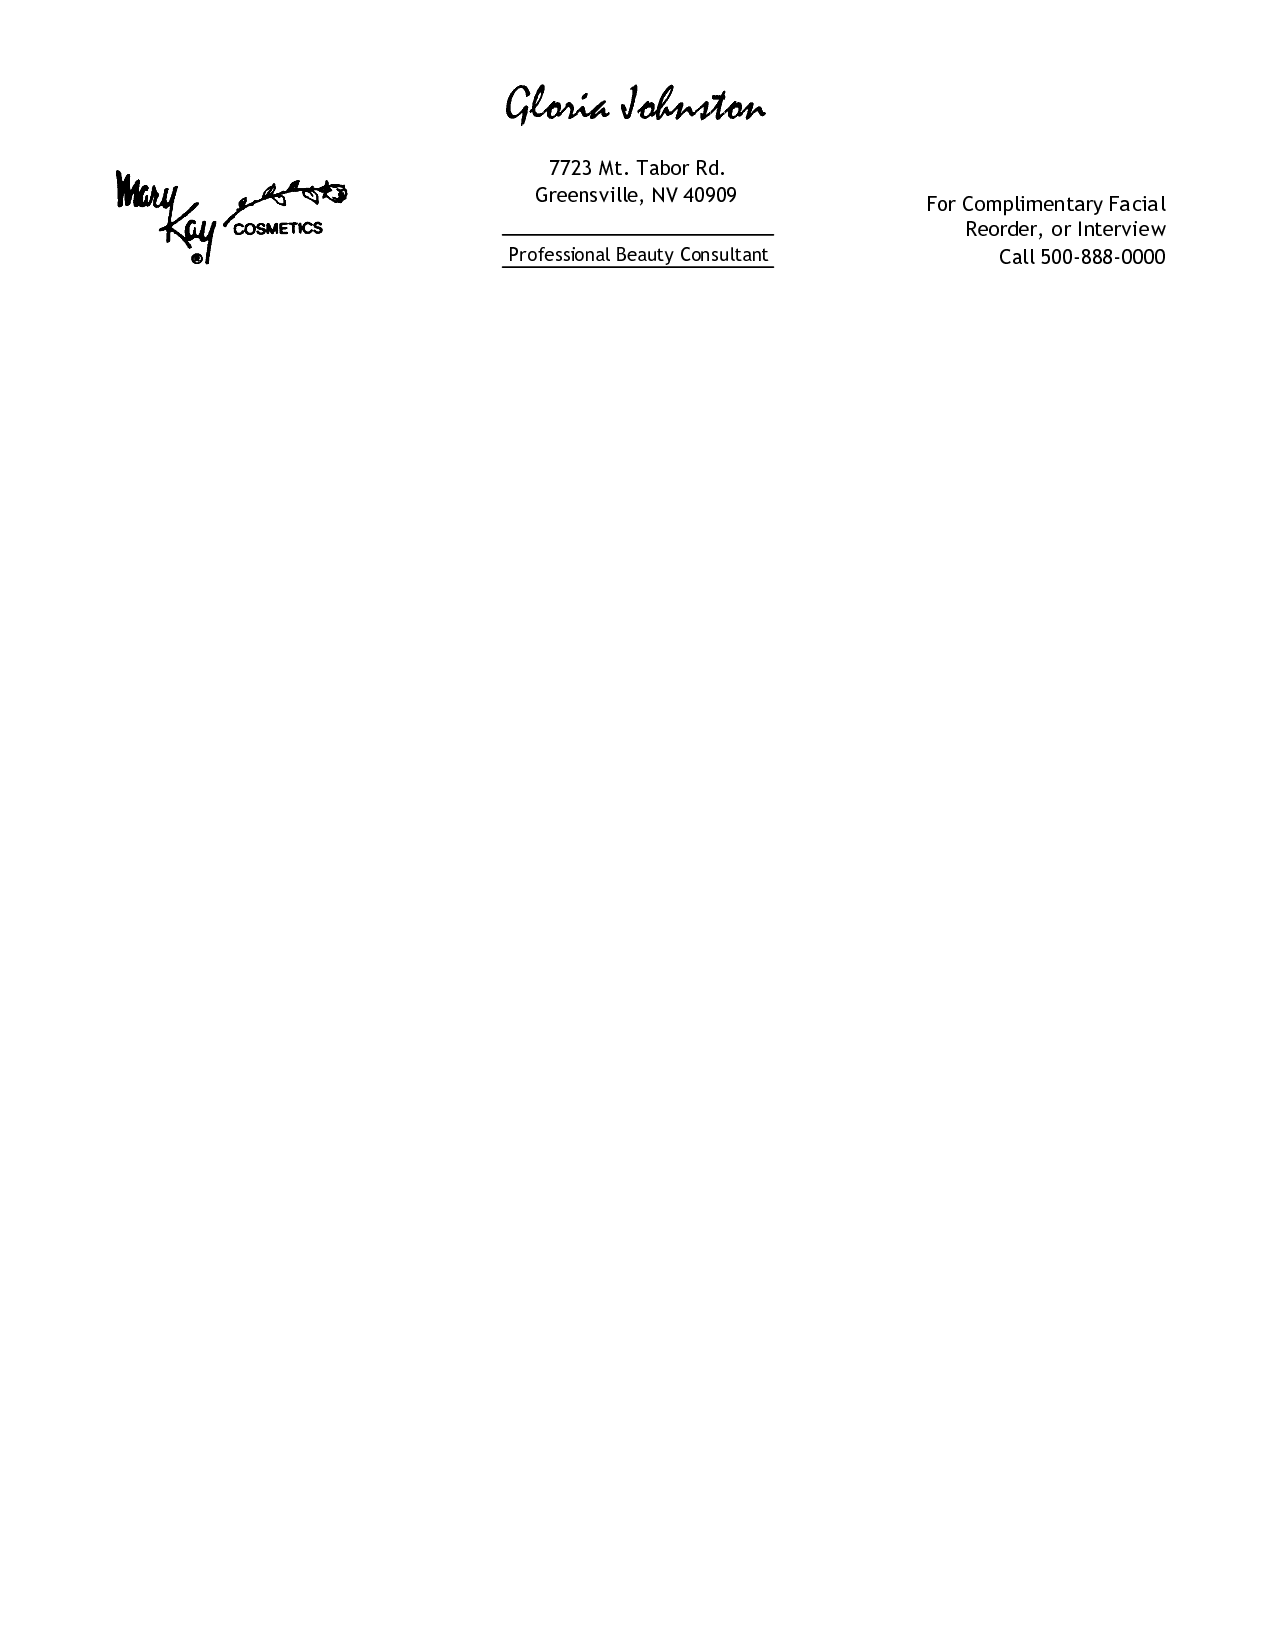 Free Personal Letterhead Templates Word Download